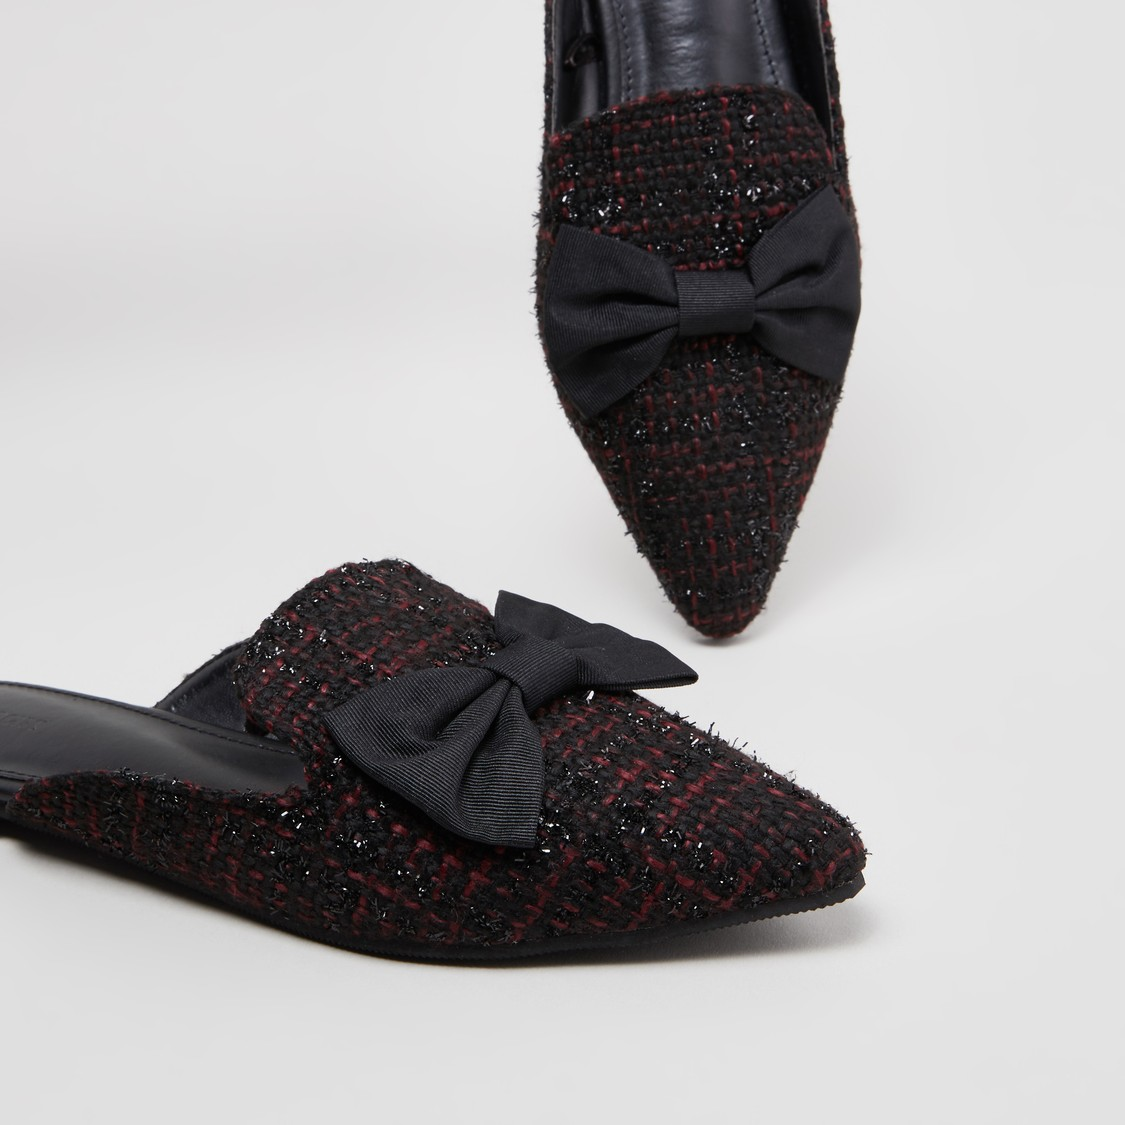 Textured Slip-On Mules with Bow Applique Detail